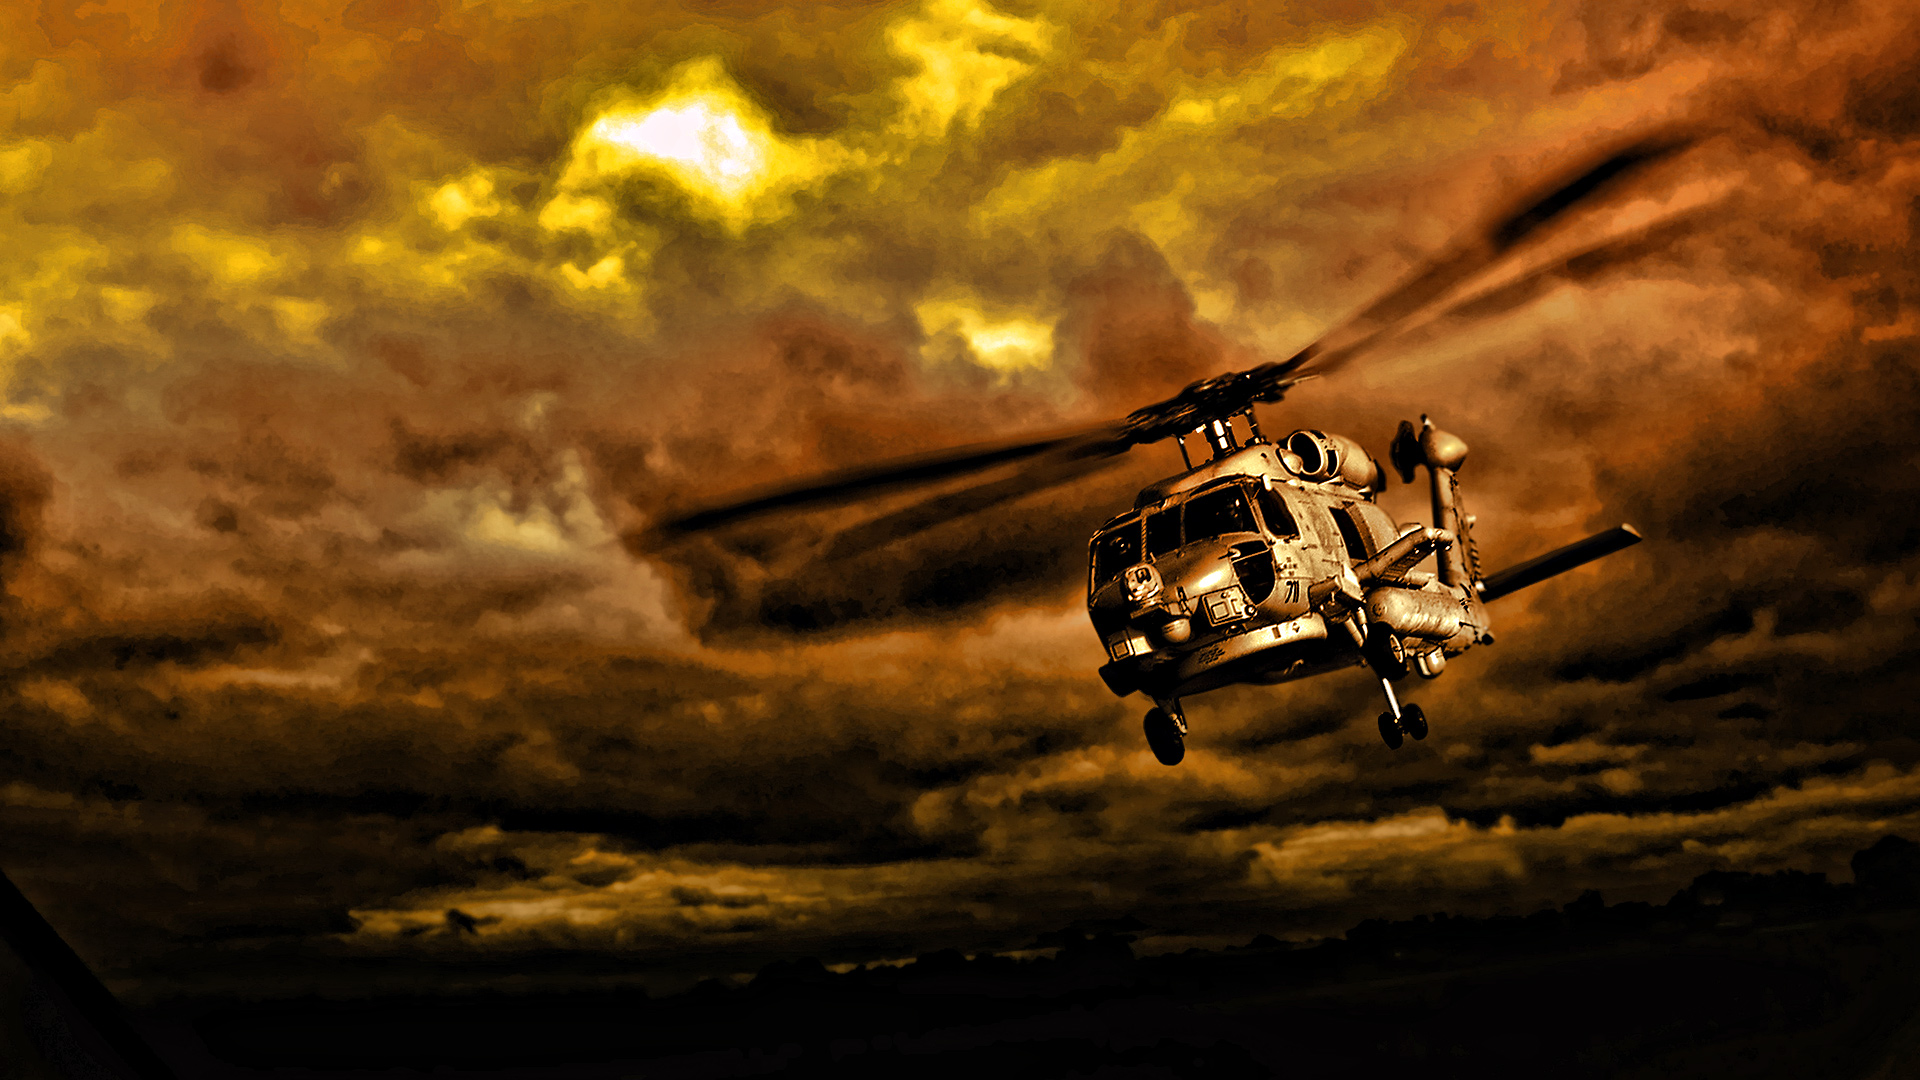 Helicopter Computer Wallpapers Desktop Backgrounds 1920x1080 ID 1920x1080